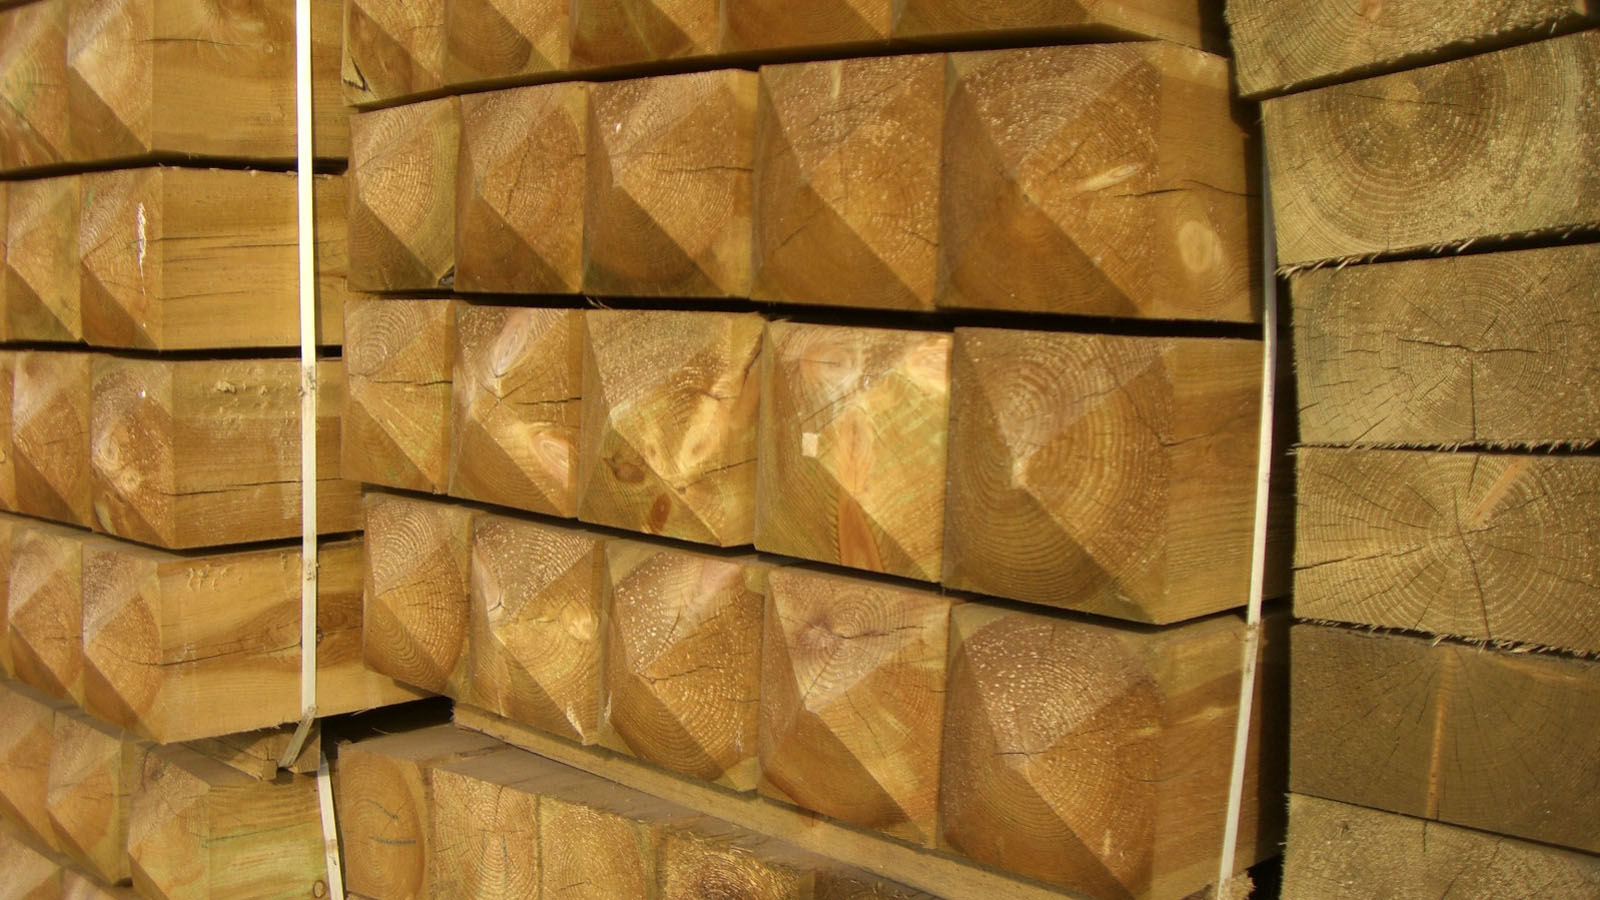 1-fencing-garden-products-and-other-specialty-products-nothern-europe-timber-production-lameko-impex